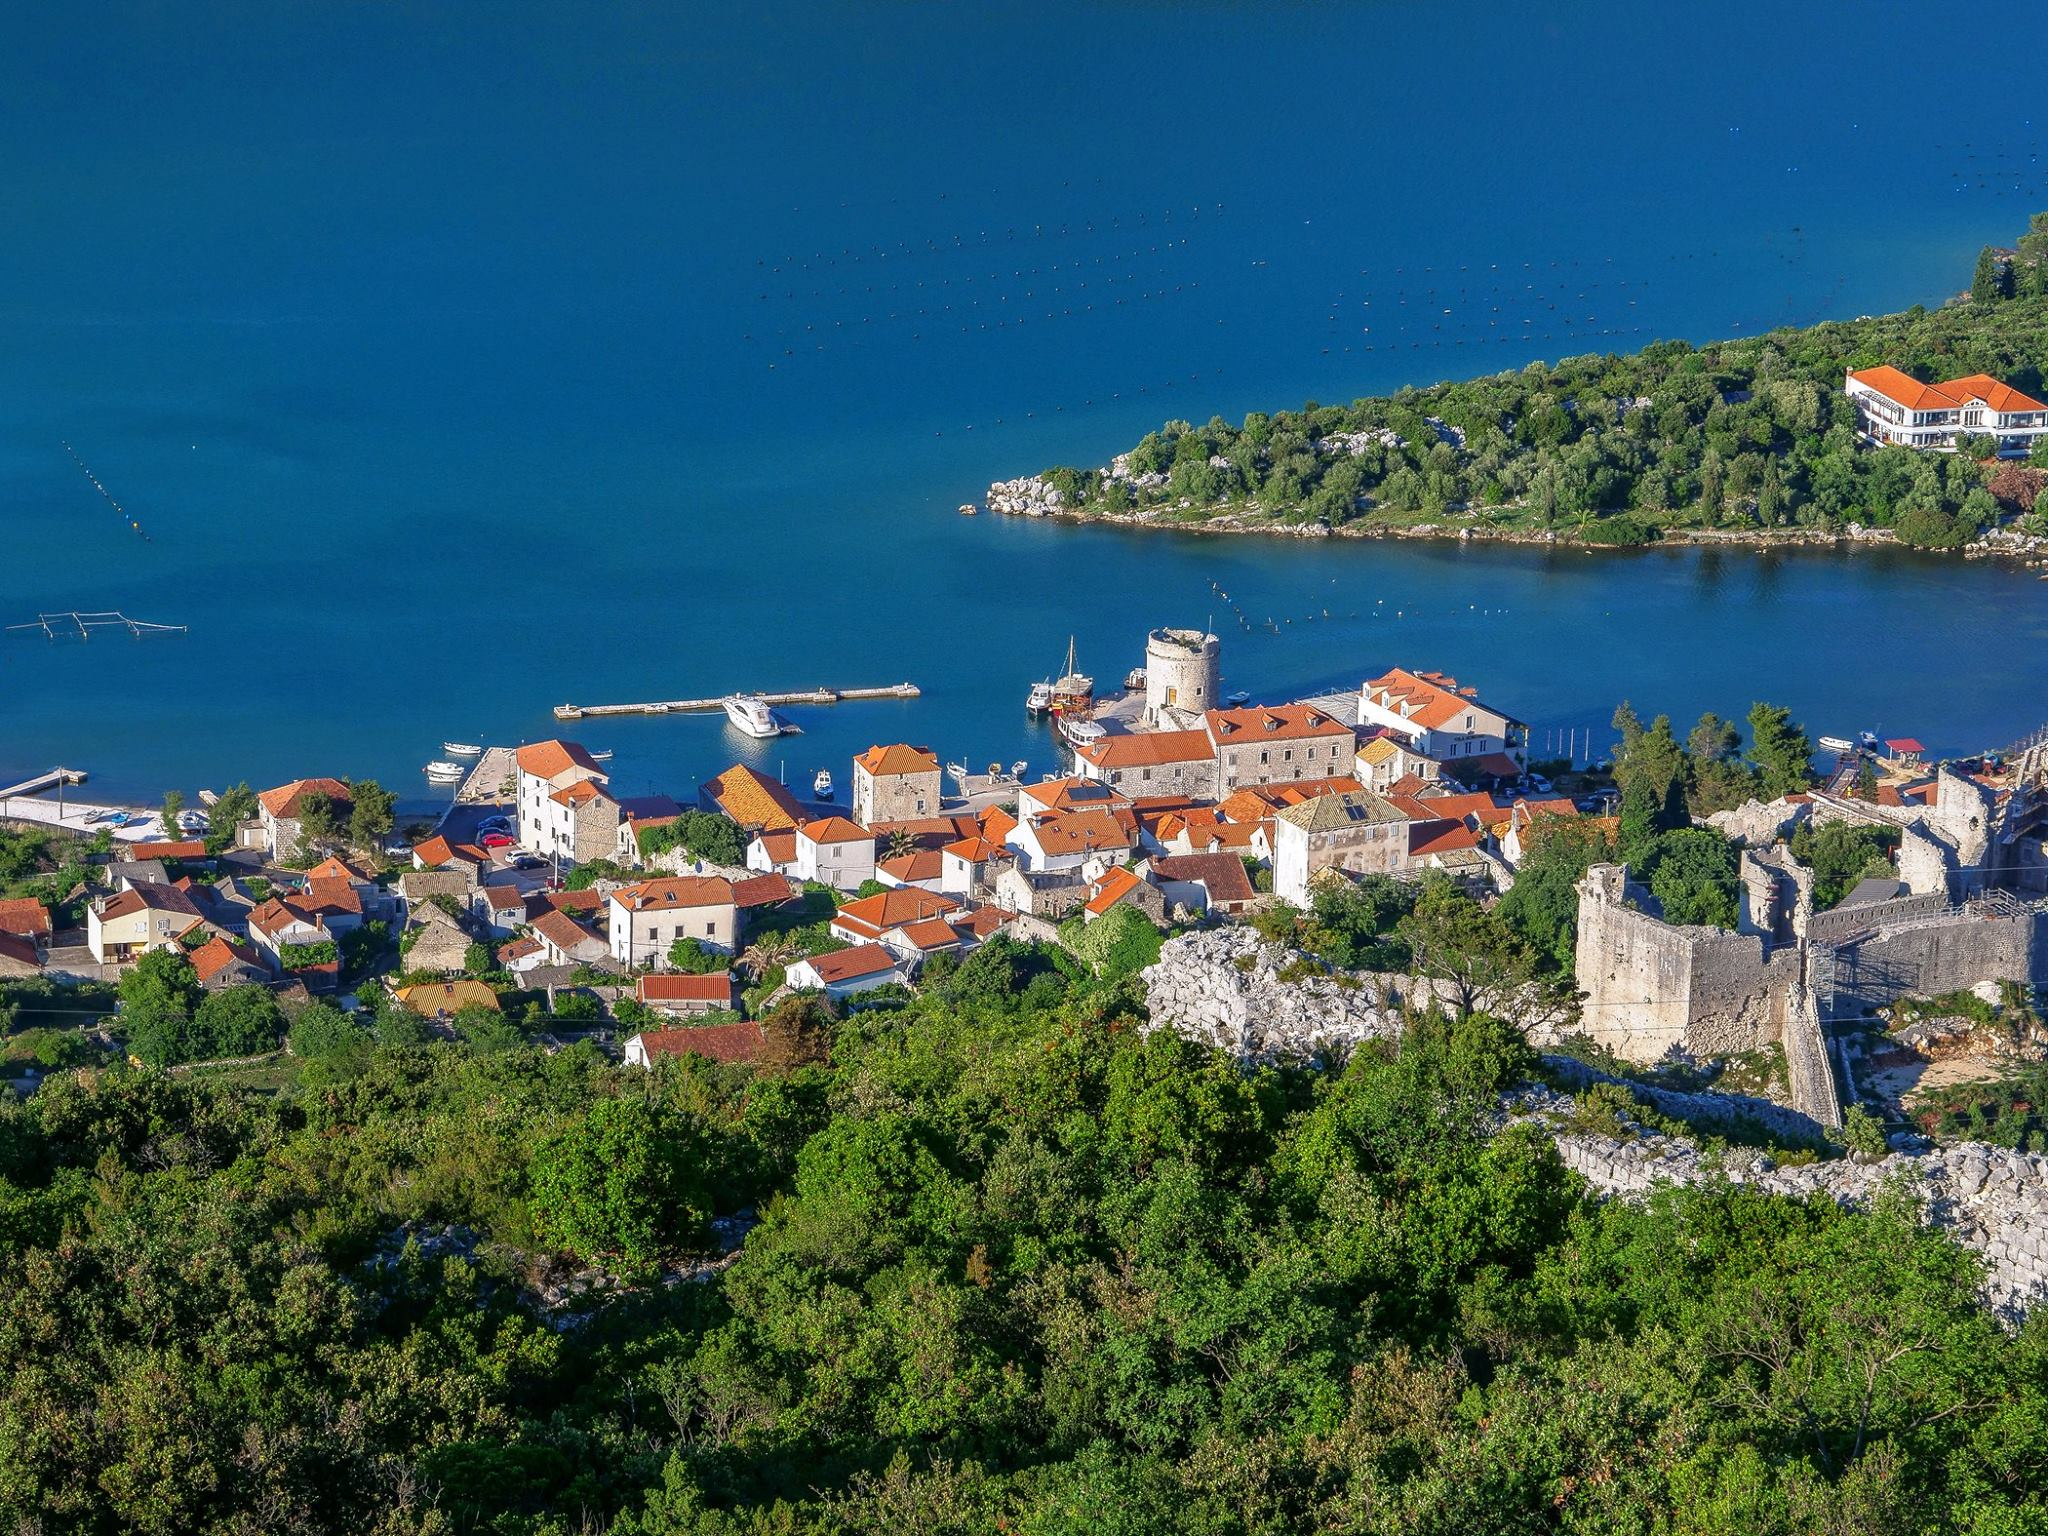 Balkan route from Dubrovnik to Athens in 16 days. Visit Bosnia, Montenegro, pass hills of Albania, and discover fortresses and ancient towns of Greece.